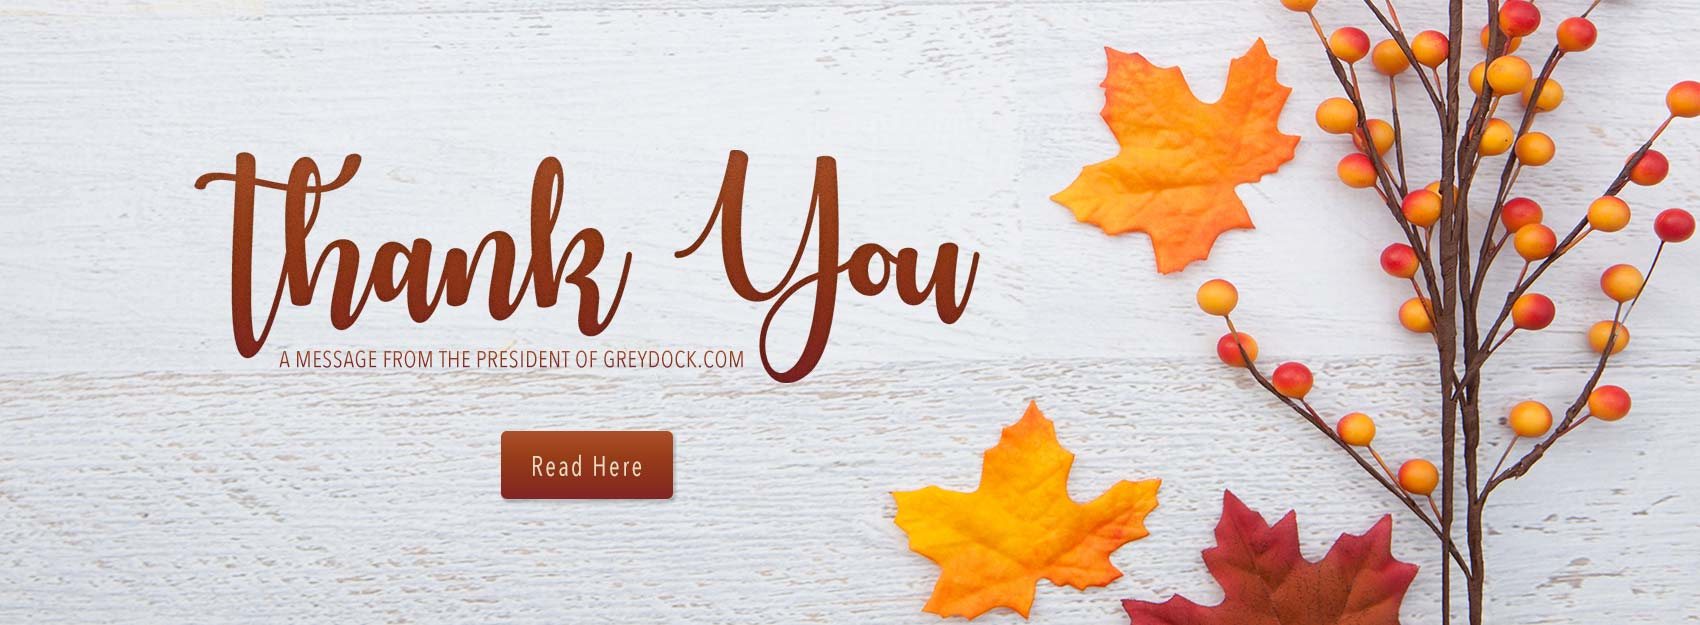 Thank You - A Message from GreyDock